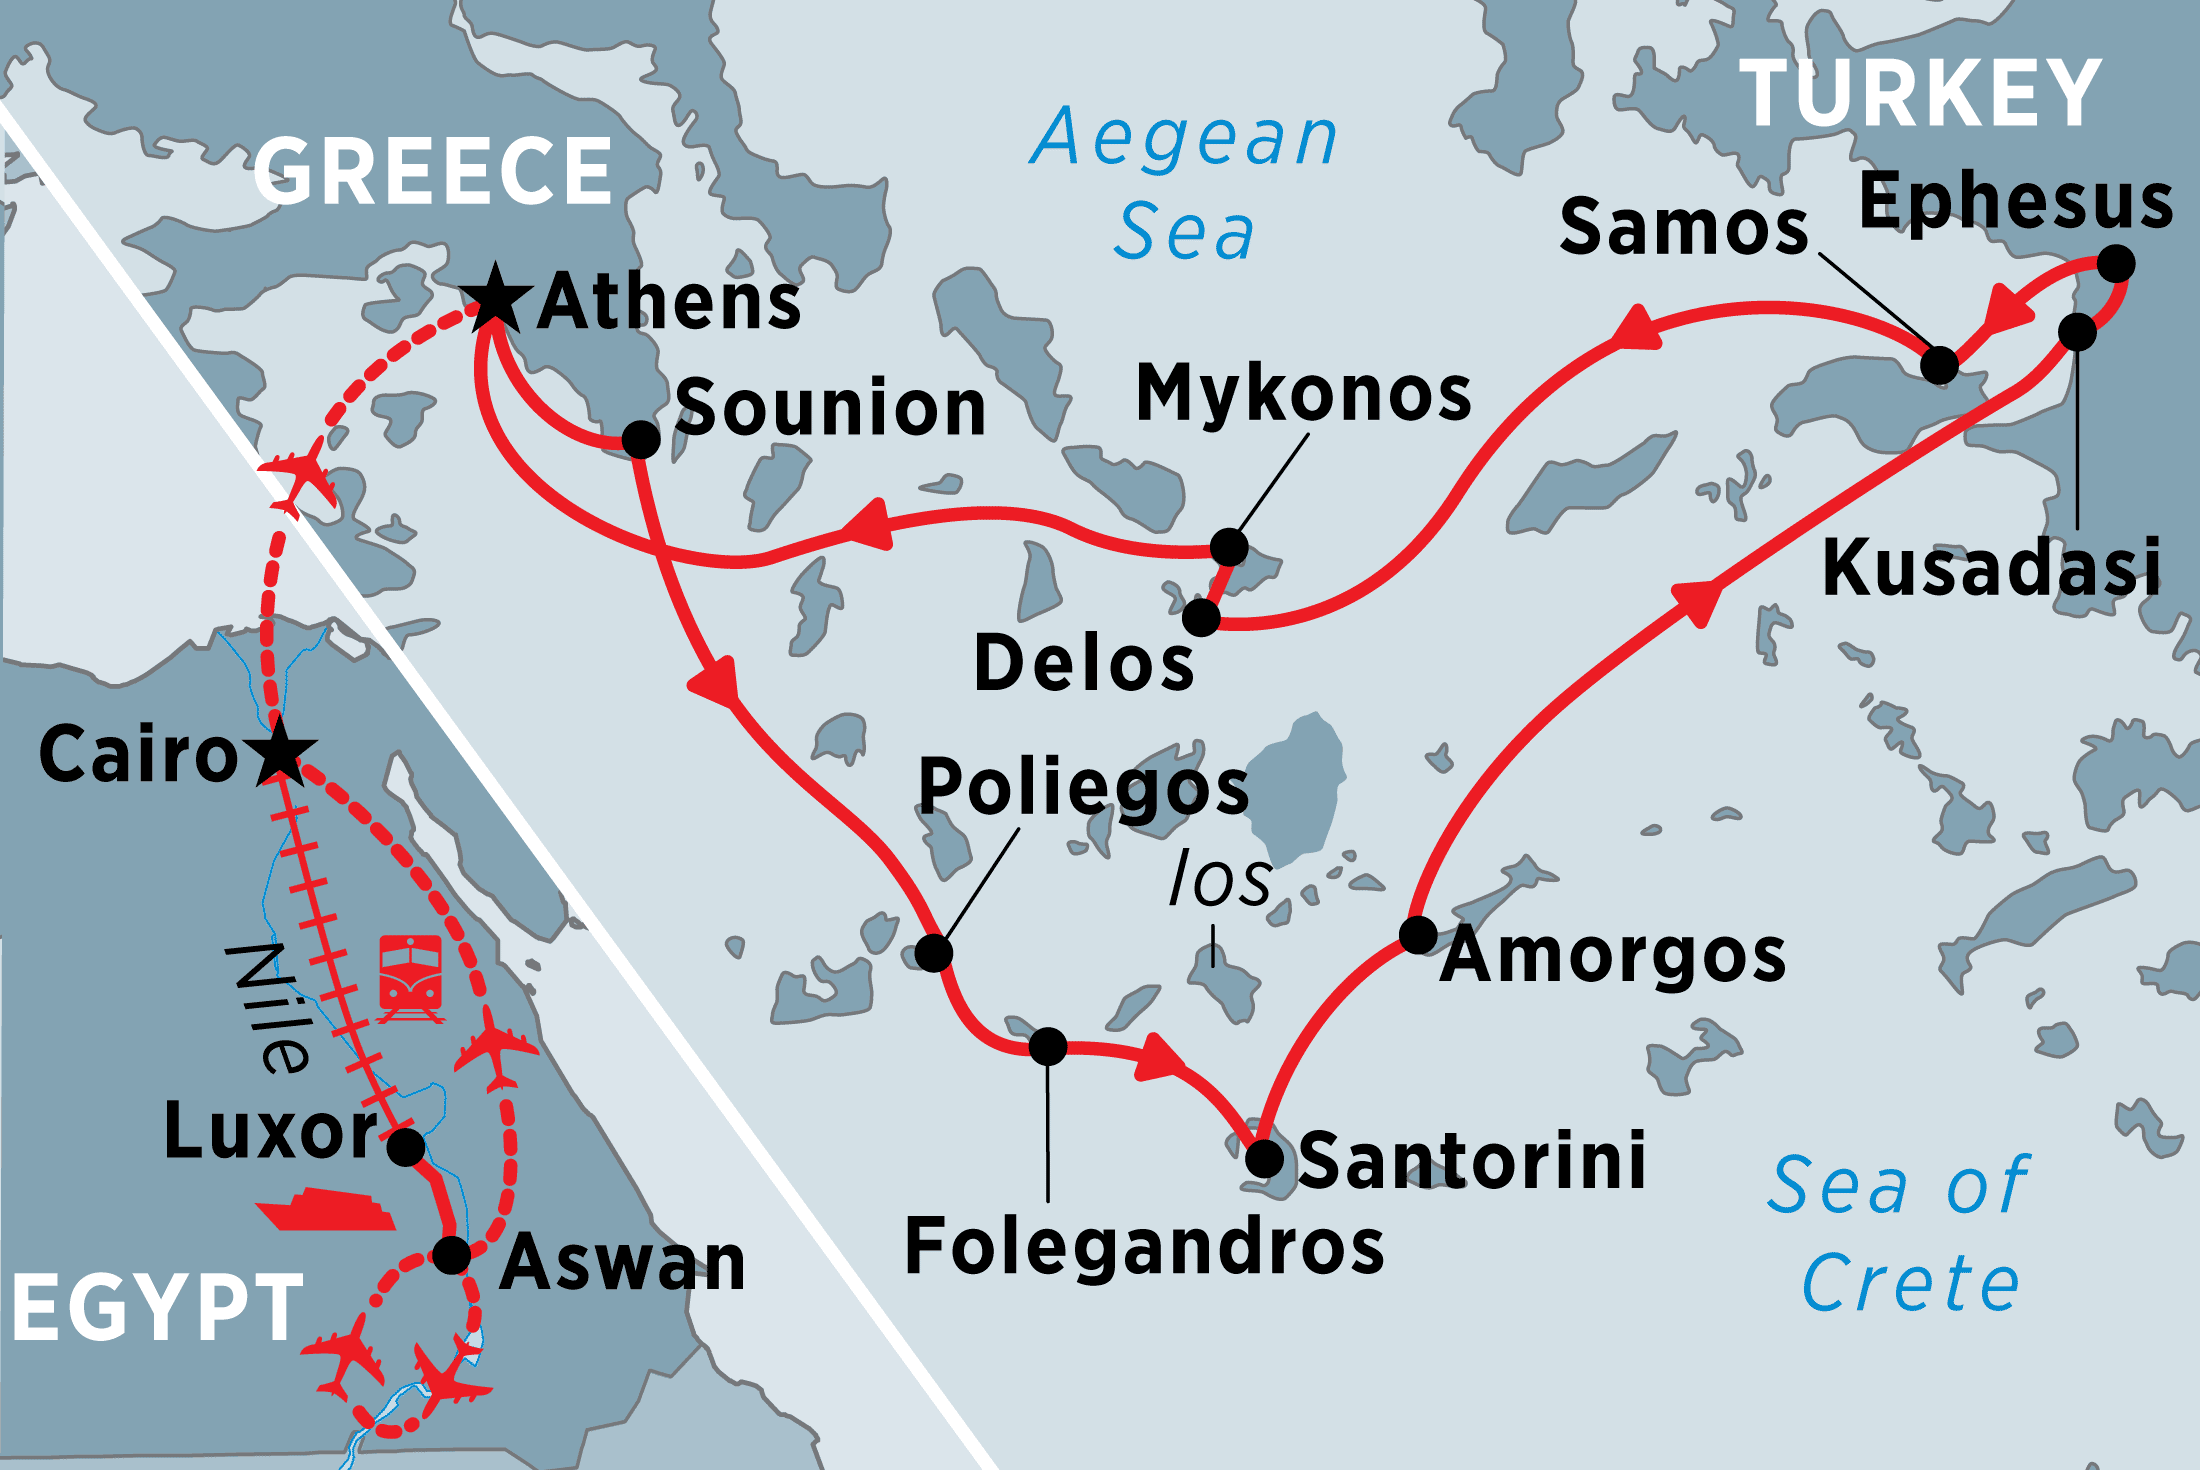 Nile Valley And Greece By Land And Sea Overview Nile Valley And Greece By Land And Sea